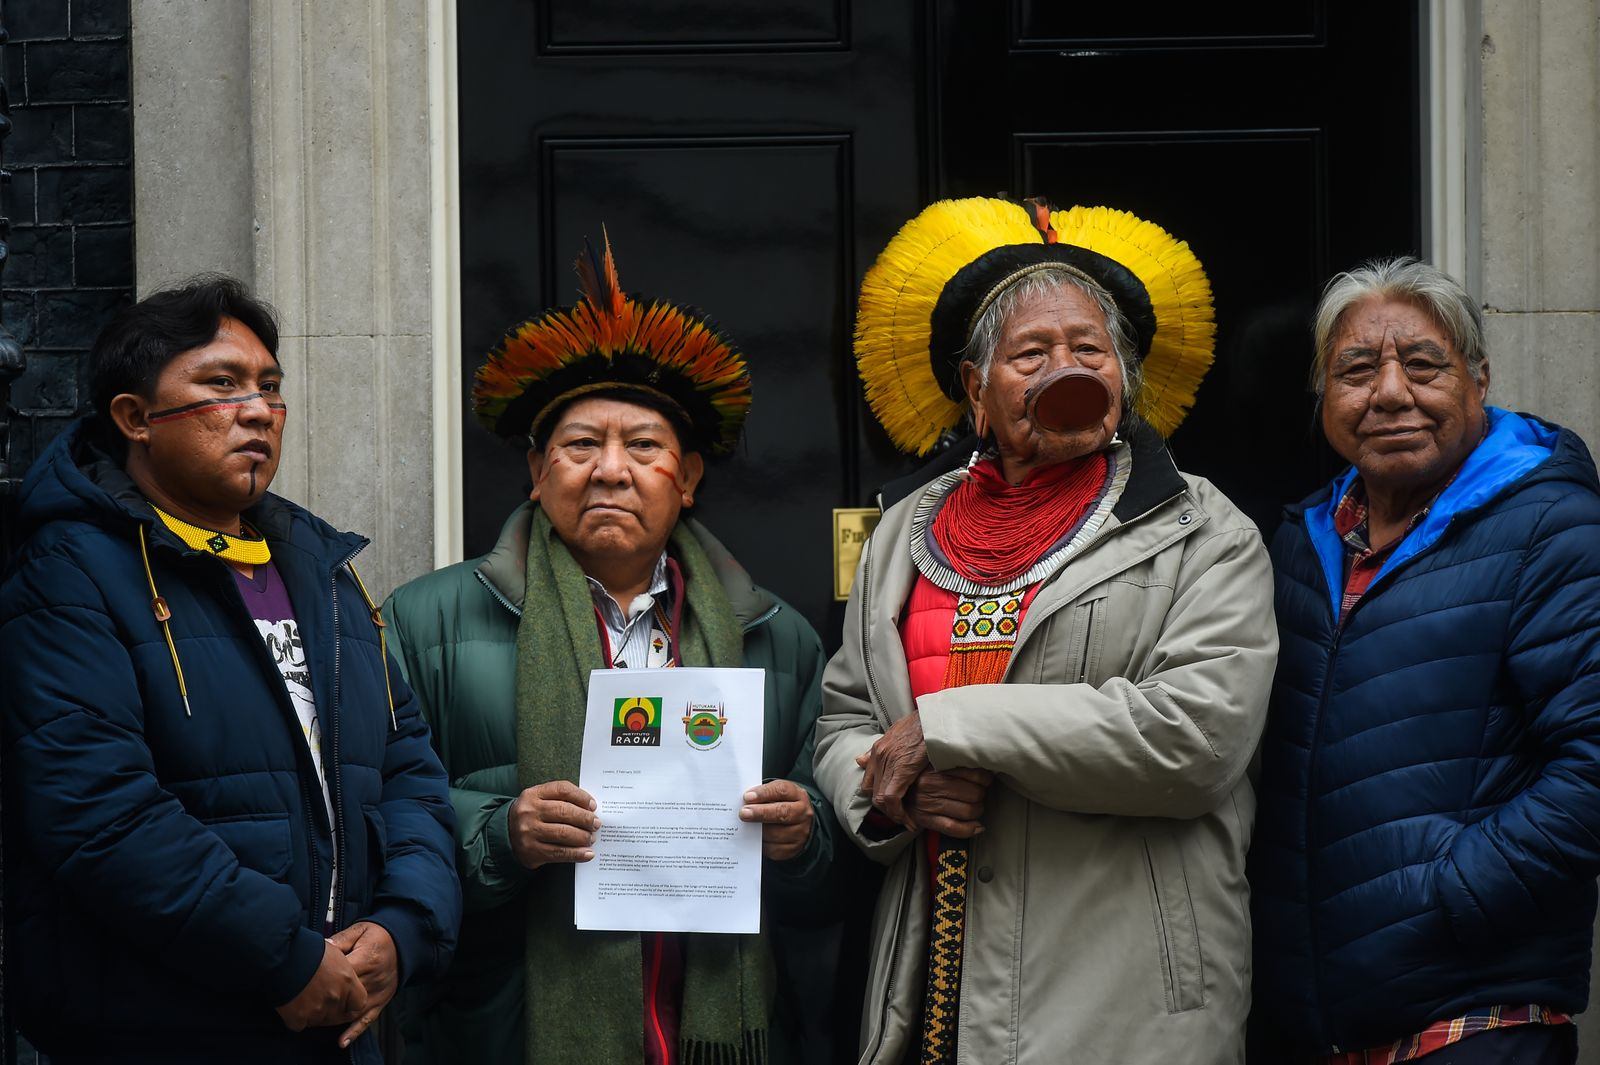 Brazilian Indigenous Groups Lobby British PM To Condemn Bolsonaro